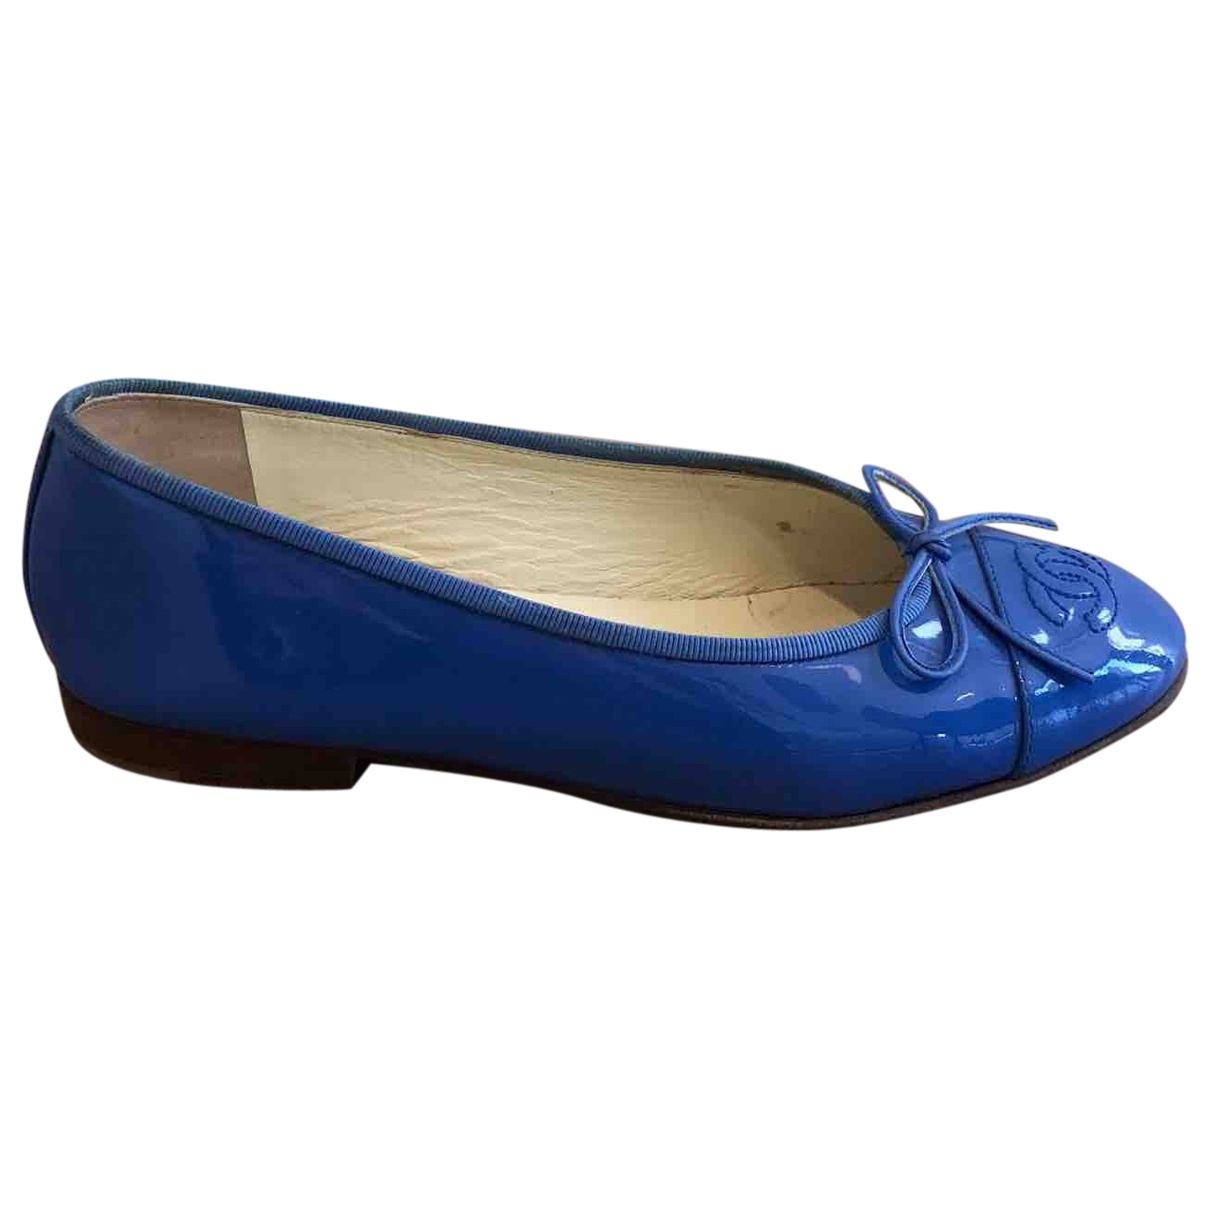 Chanel \N Blue Patent leather Ballet flats for Women 37 EU